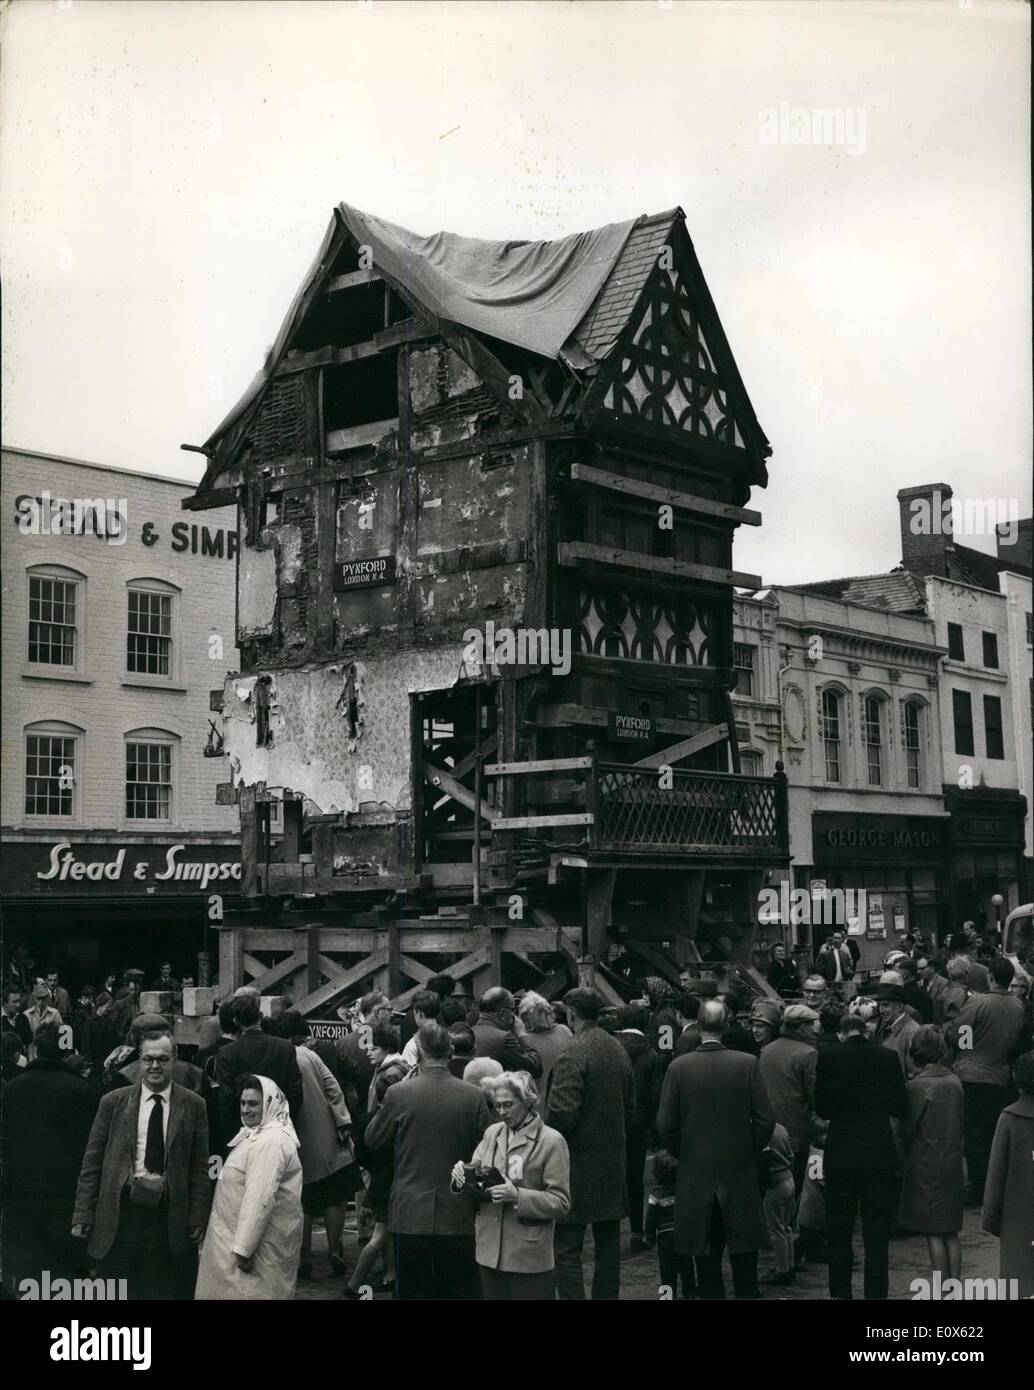 May 05, 1965 - Historis 17th. Century Building is removed on one piece to a Temporary site in Hereford: After six years of negotiations with the Hereford City Council a 17th, century four-storey building was saved from being demolished to make room for the building of a chain store. Today it was jacked up 4 feet from it's foundations and transported on a trolley vehicle down the High Street to a temporary site alongside the City's historical Town House. In six months time it will be brought back to be incorporated in the chain store - Stock Image